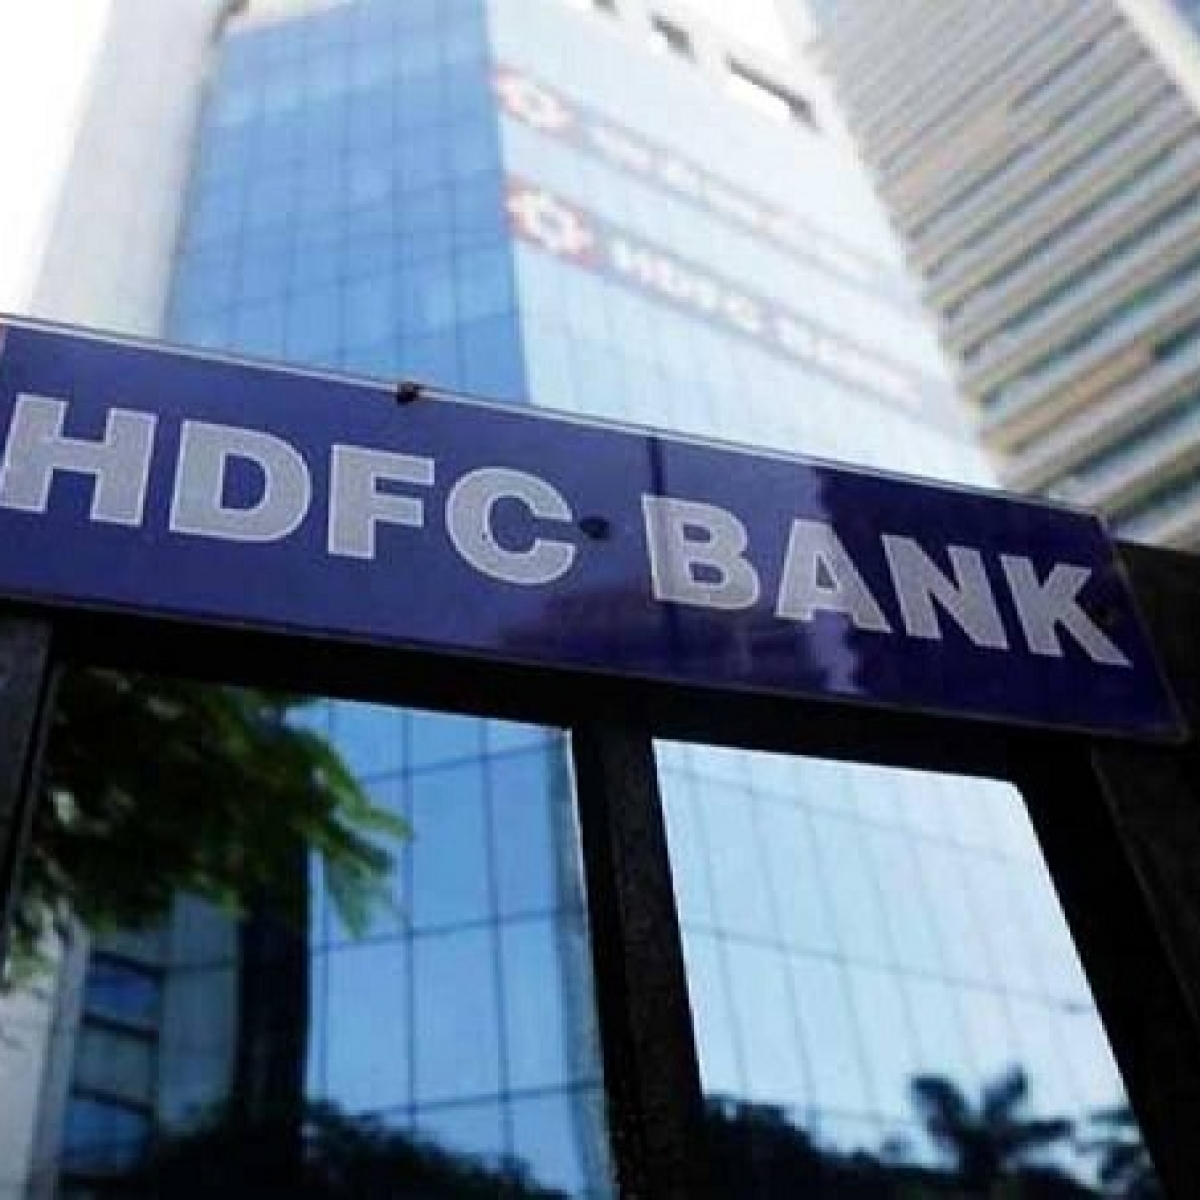 HDFC Bank Q1 profit rises by 20% YoY to Rs 6,659 cr